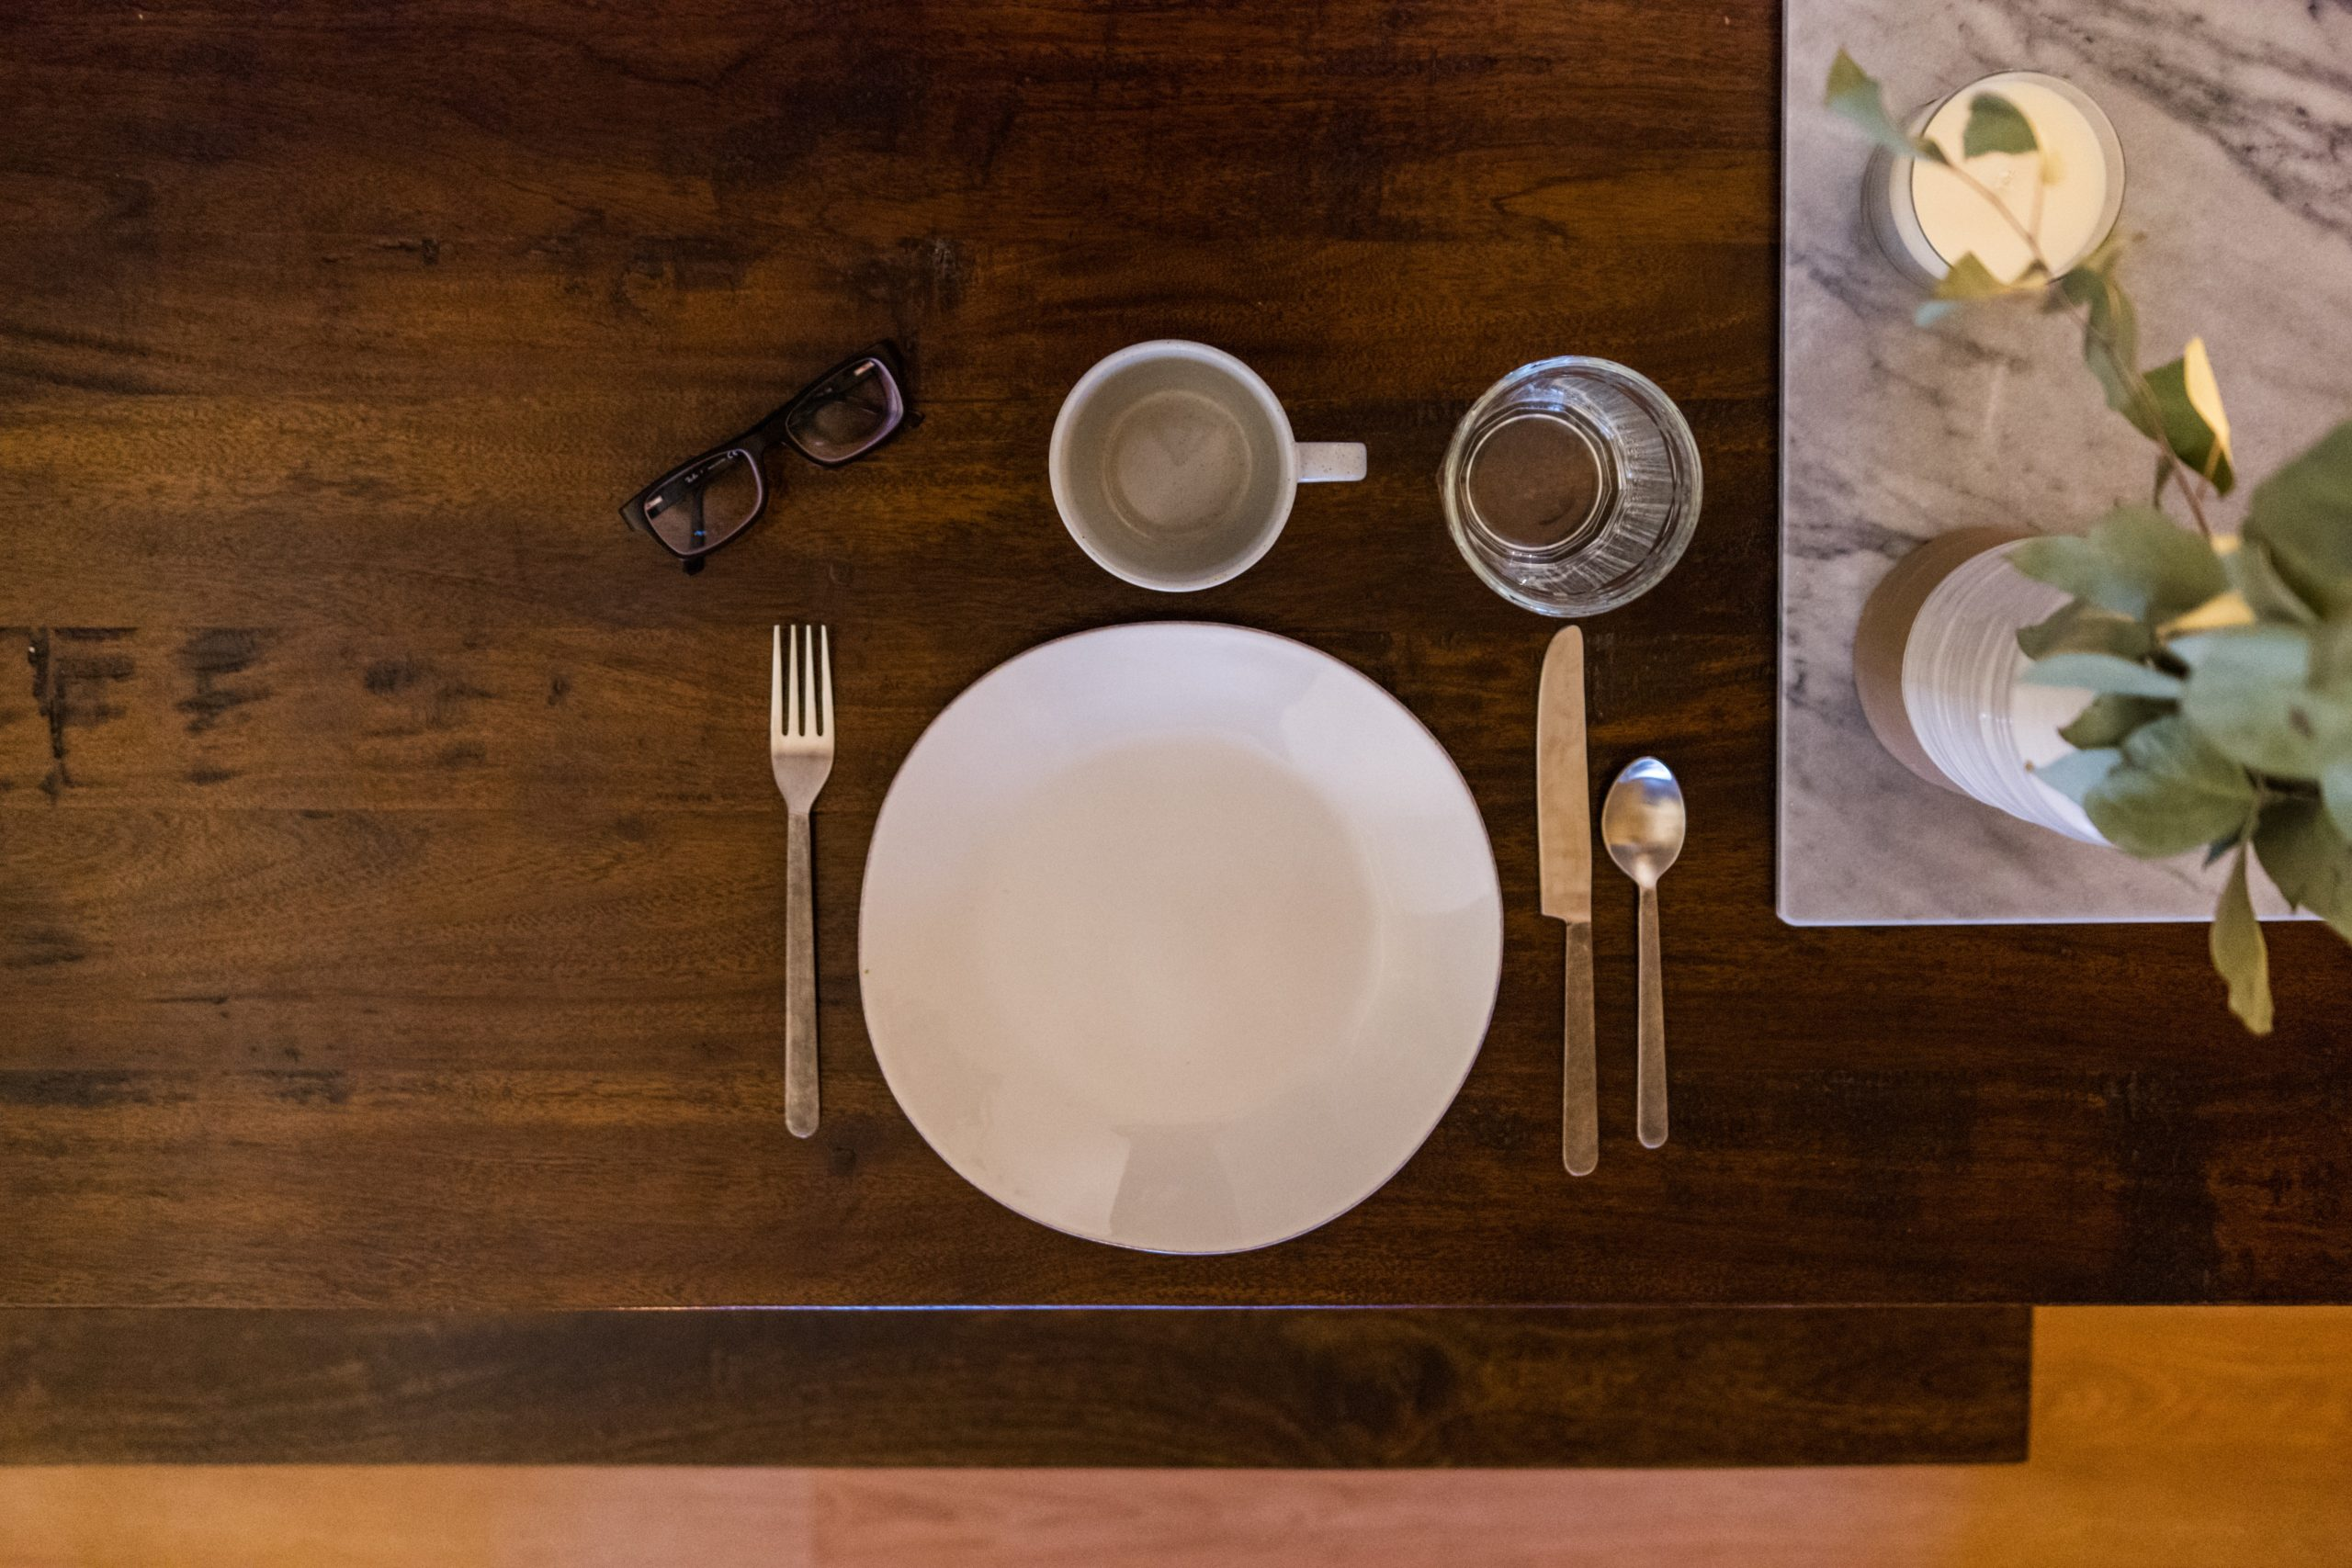 An overview shot of a pair of glasses, a plate, a mug and glass, silverware and a vase of flowers lay atop a wooden table.